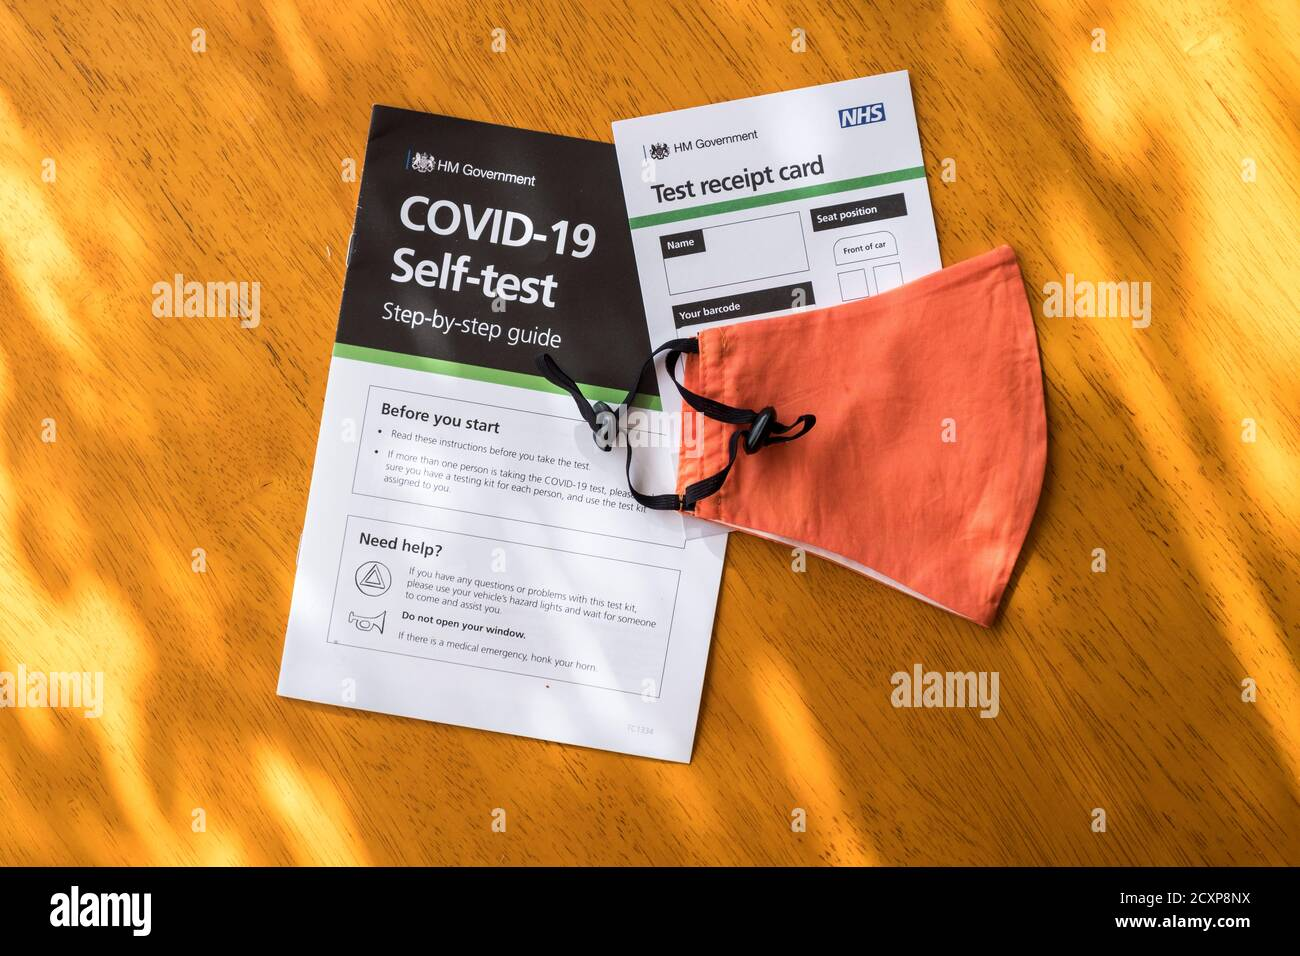 Covid-19 Self Test step-by-step guide leaflet and receipt card. Stock Photo